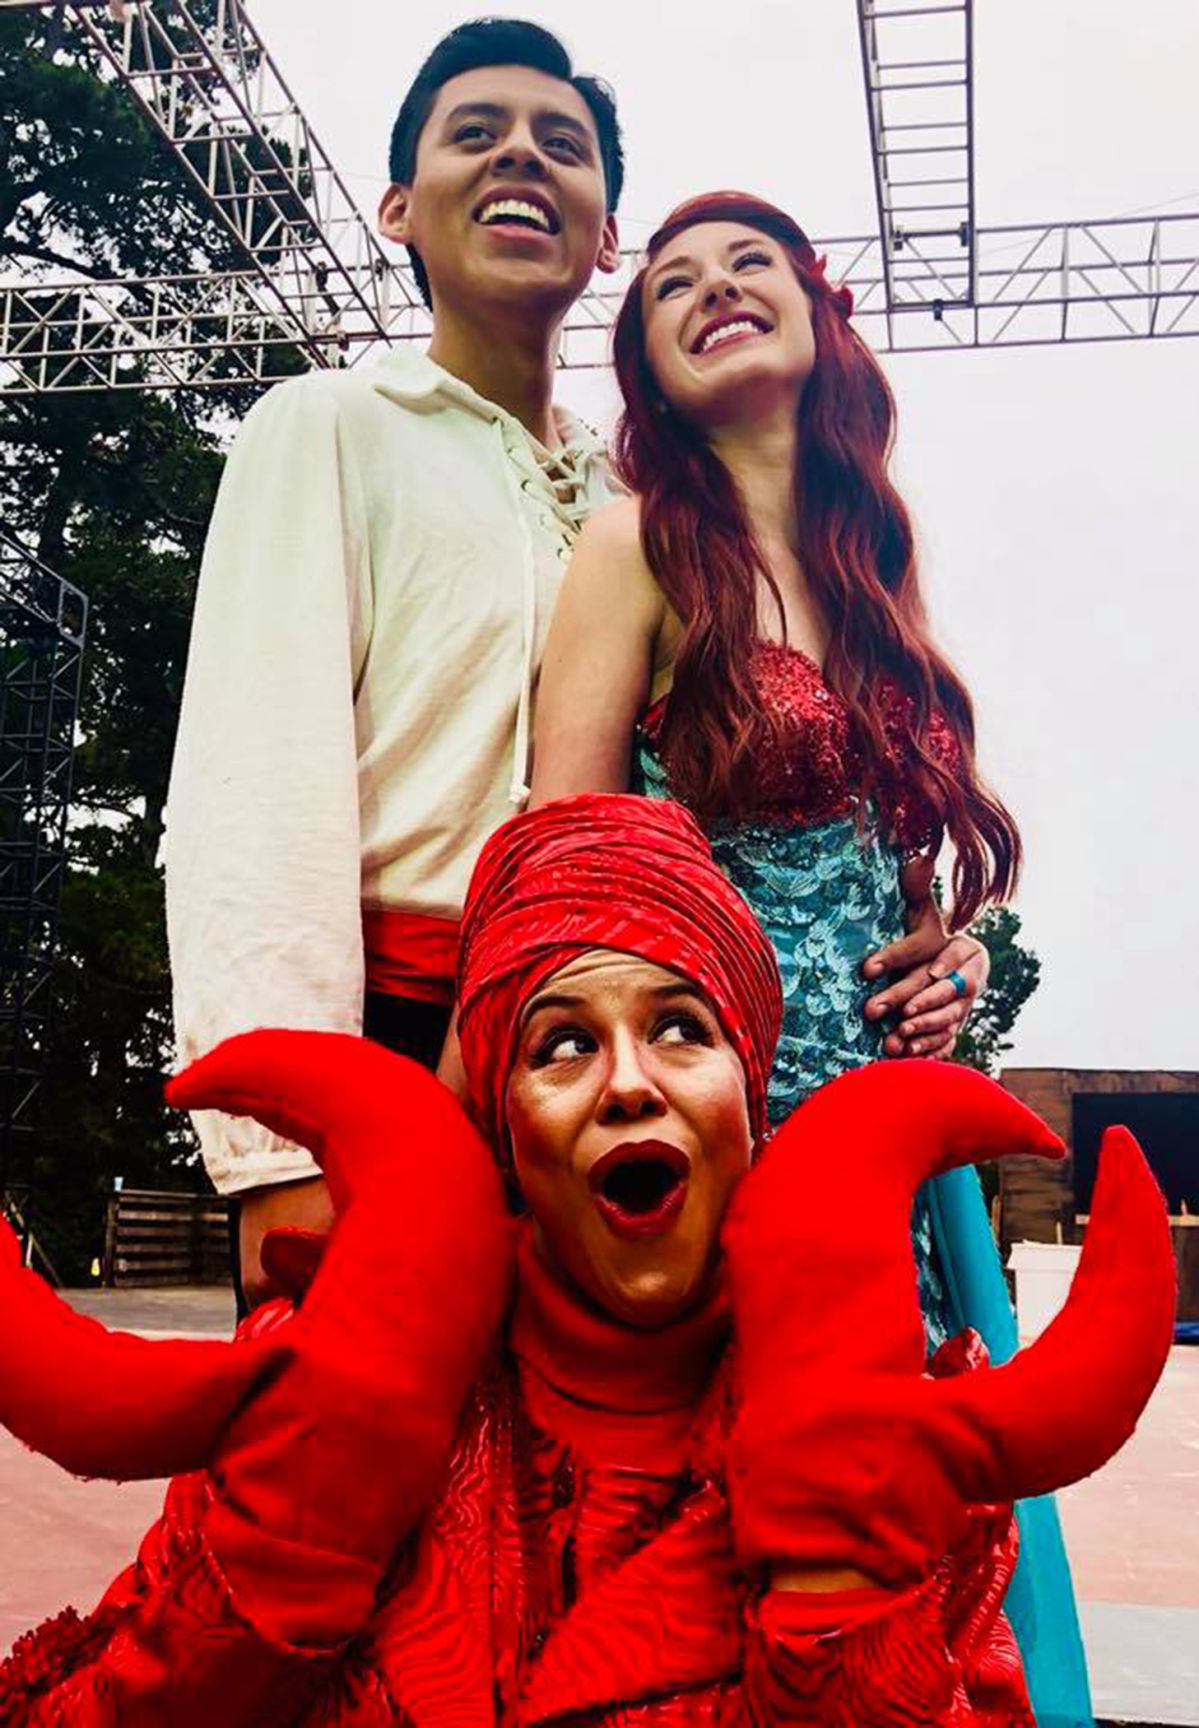 Little Mermaid with Prince and Krab